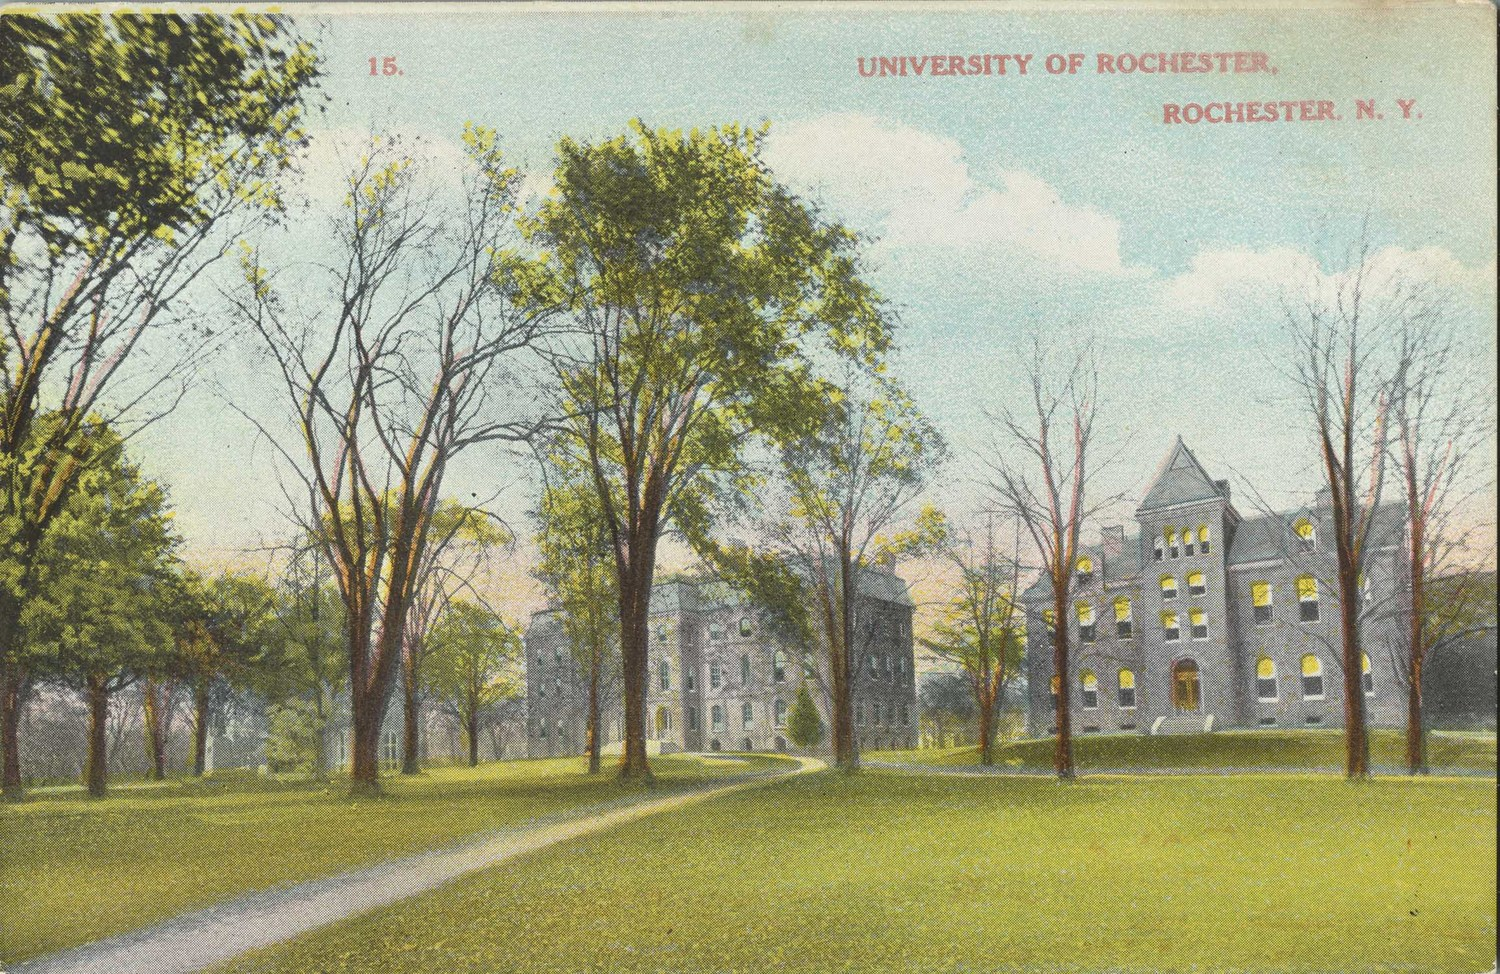 University of Rochester, Rochester, N.Y.